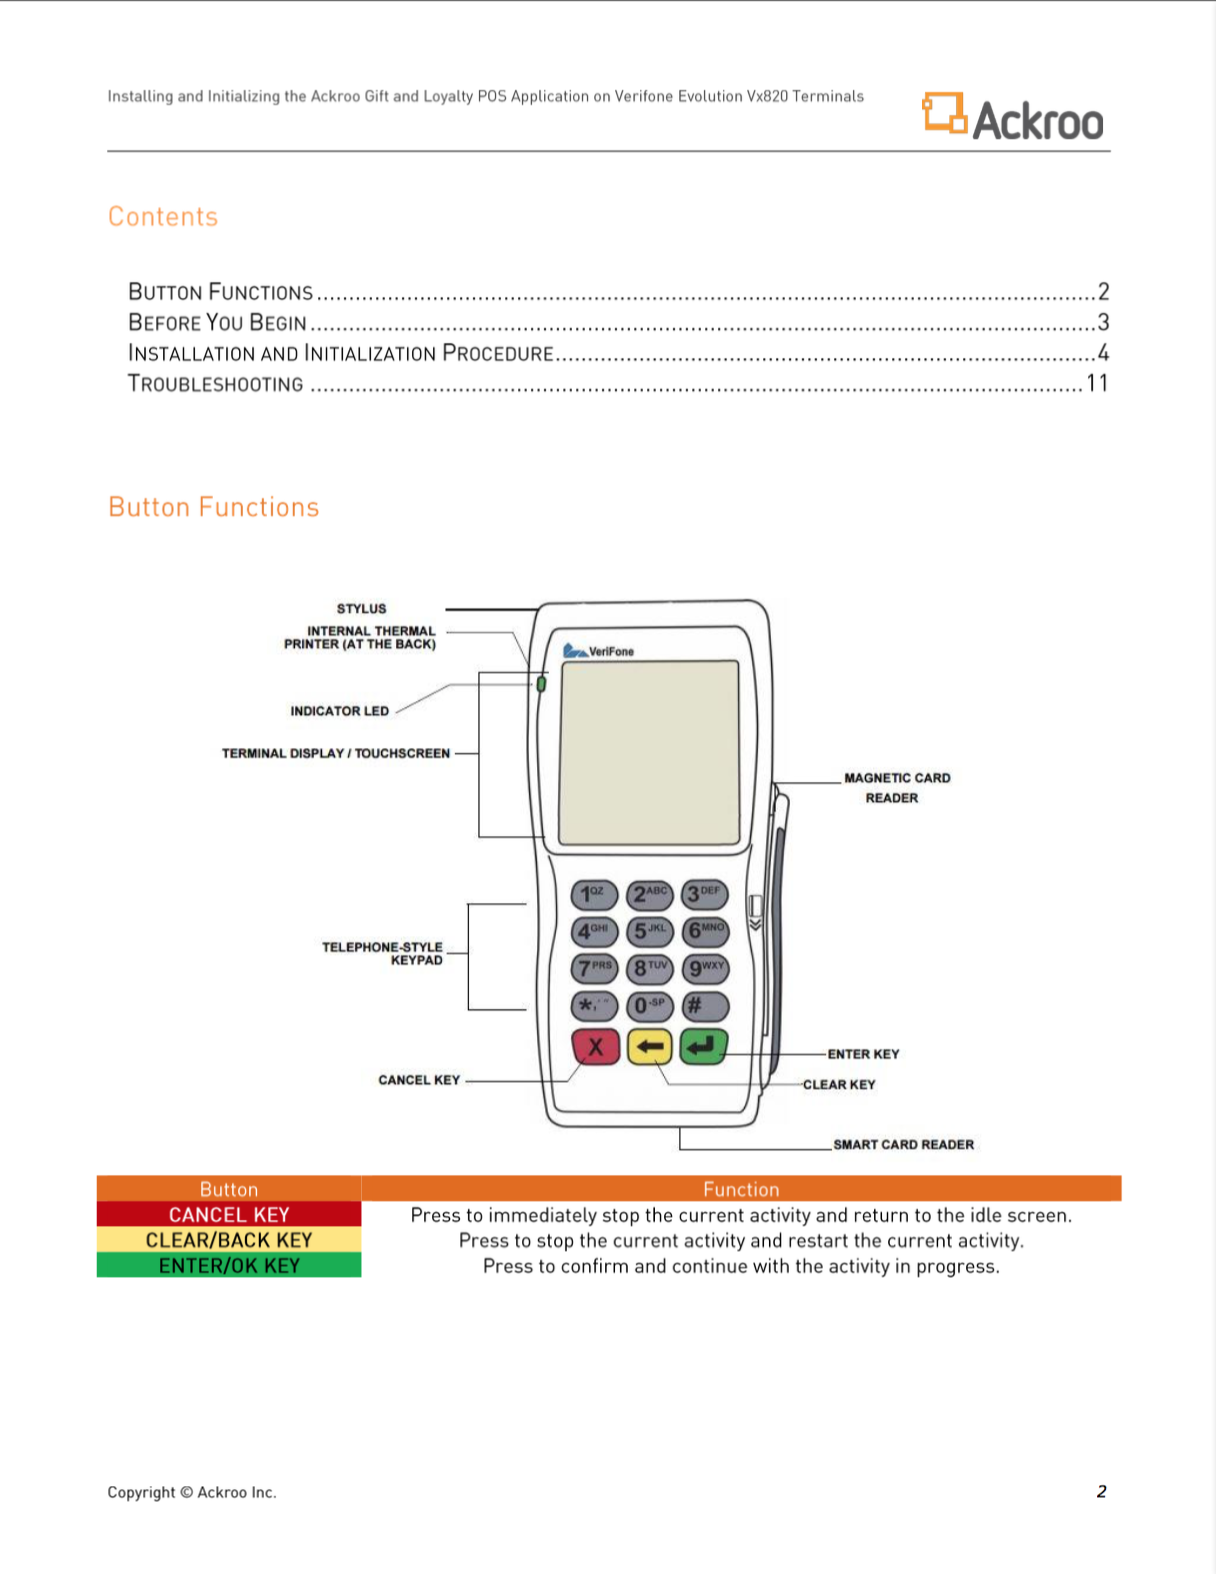 Verifone_Evolution_Vx680_Ackapp_installation_guide_-_Page_2.png